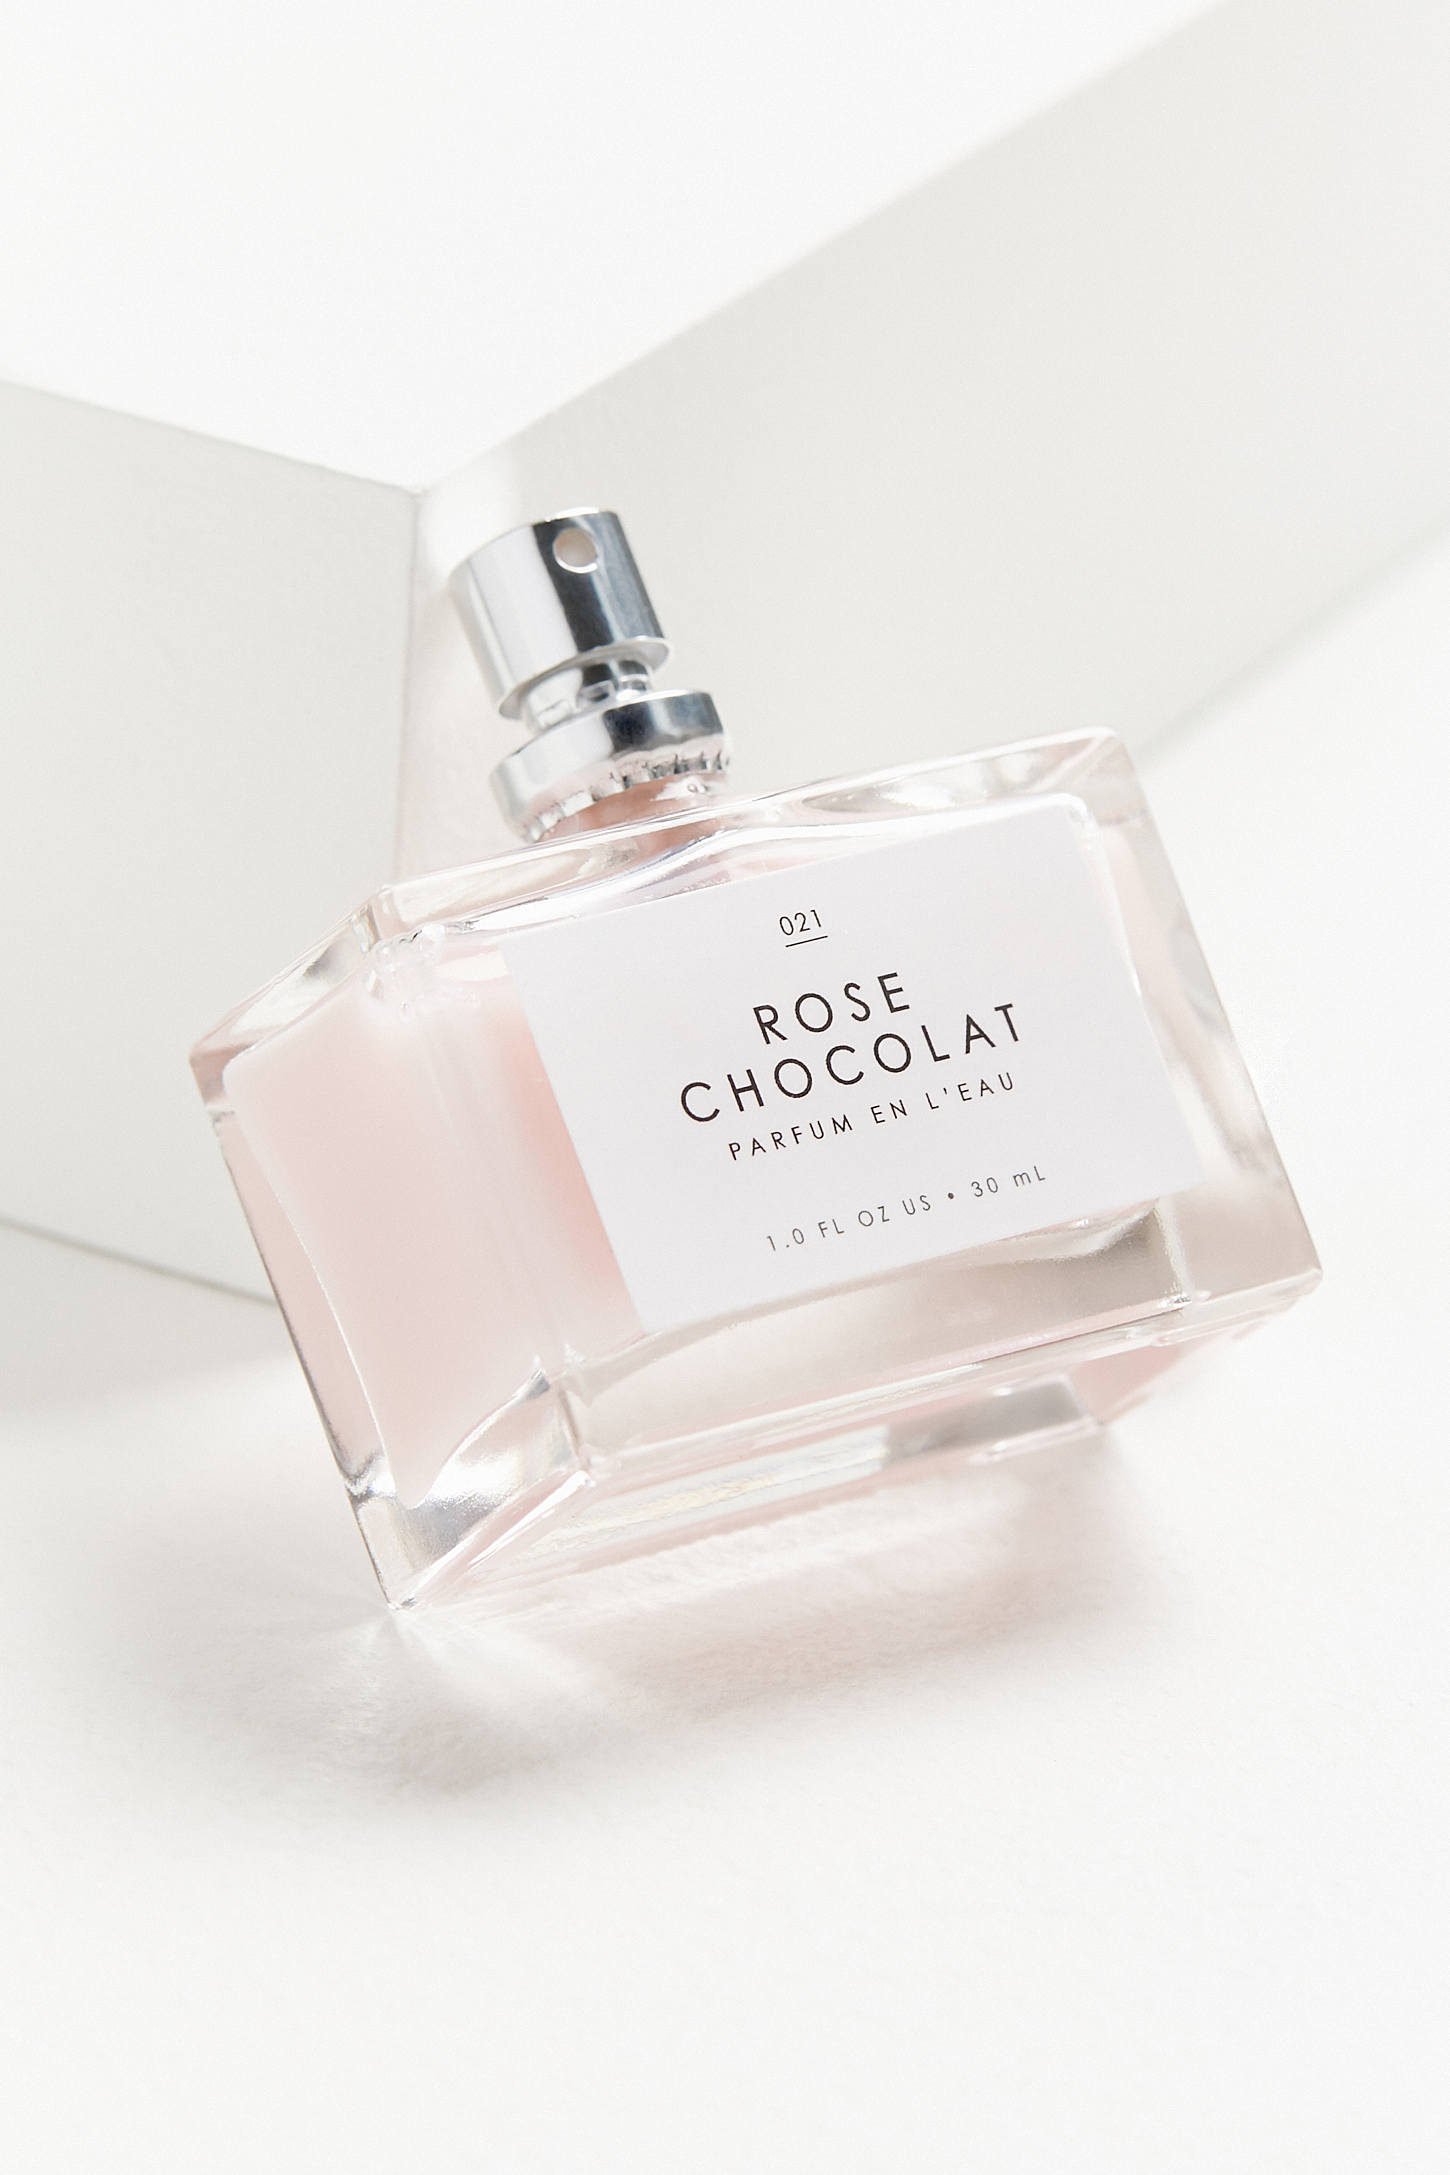 Gourmand - Rose Chocolate Perfume